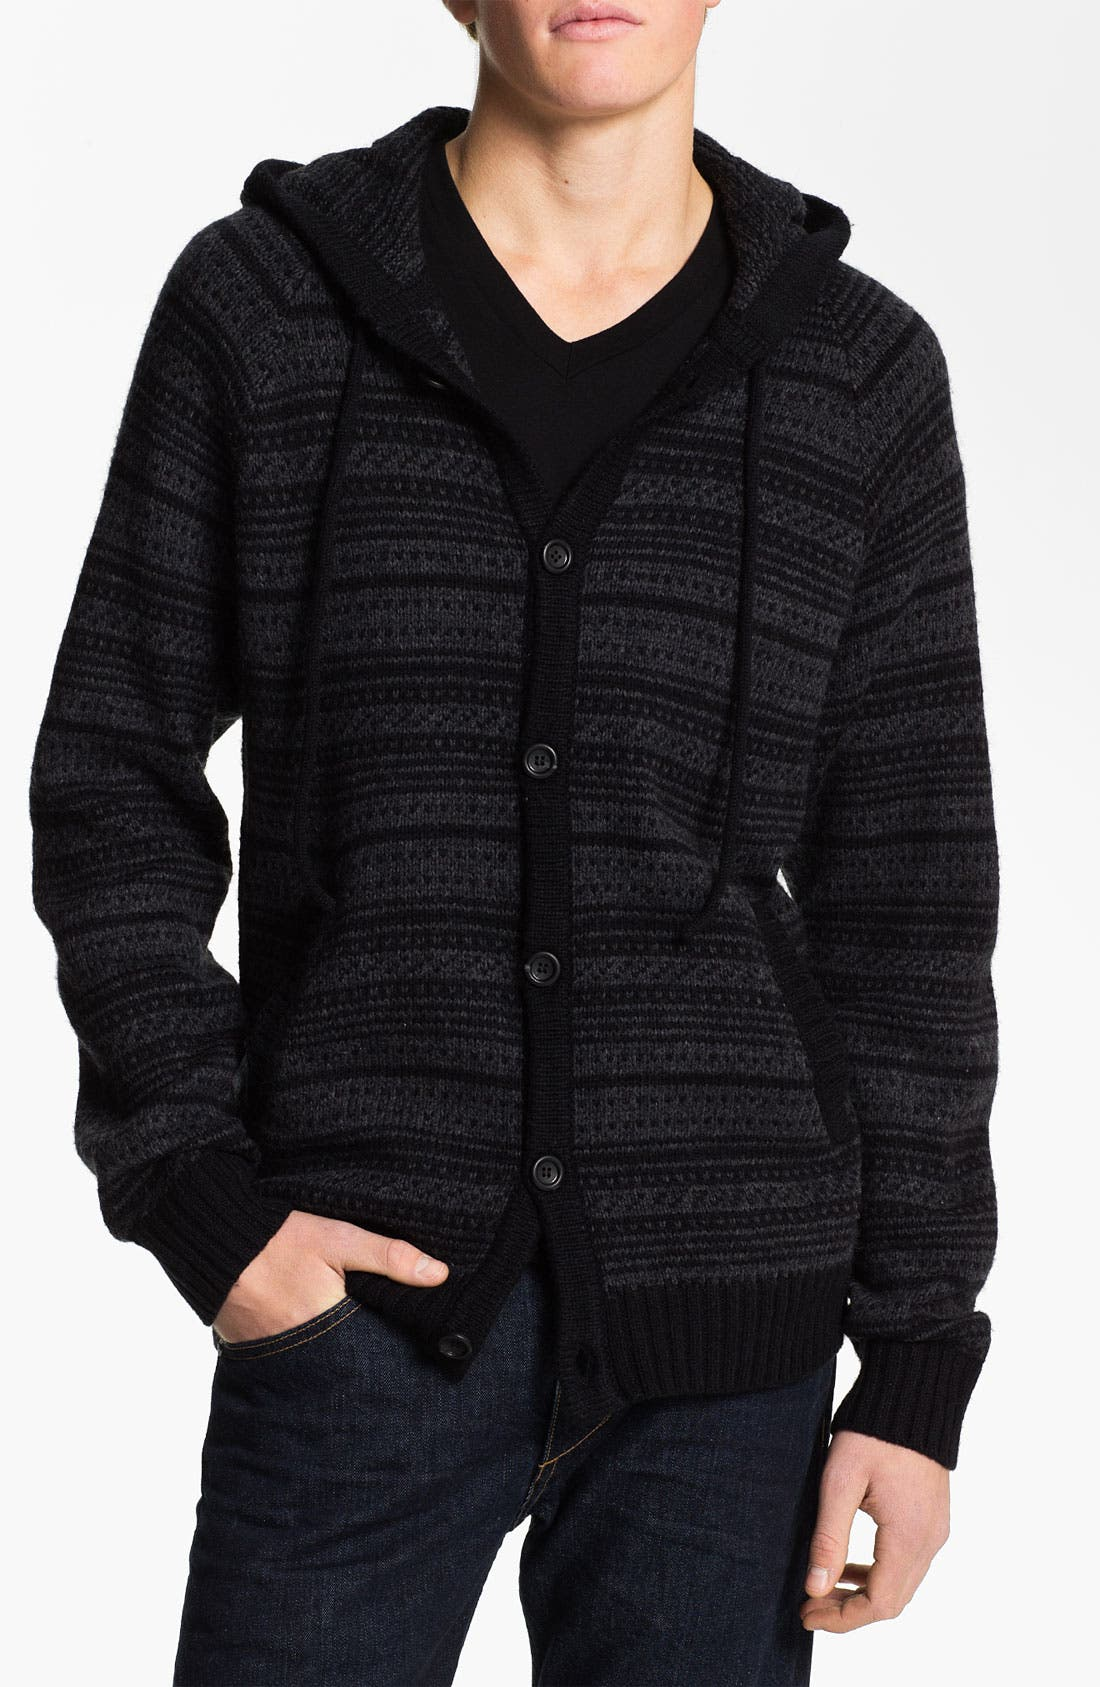 Alternate Image 1 Selected - RVCA 'Scando' Jacquard Knit Hoodie